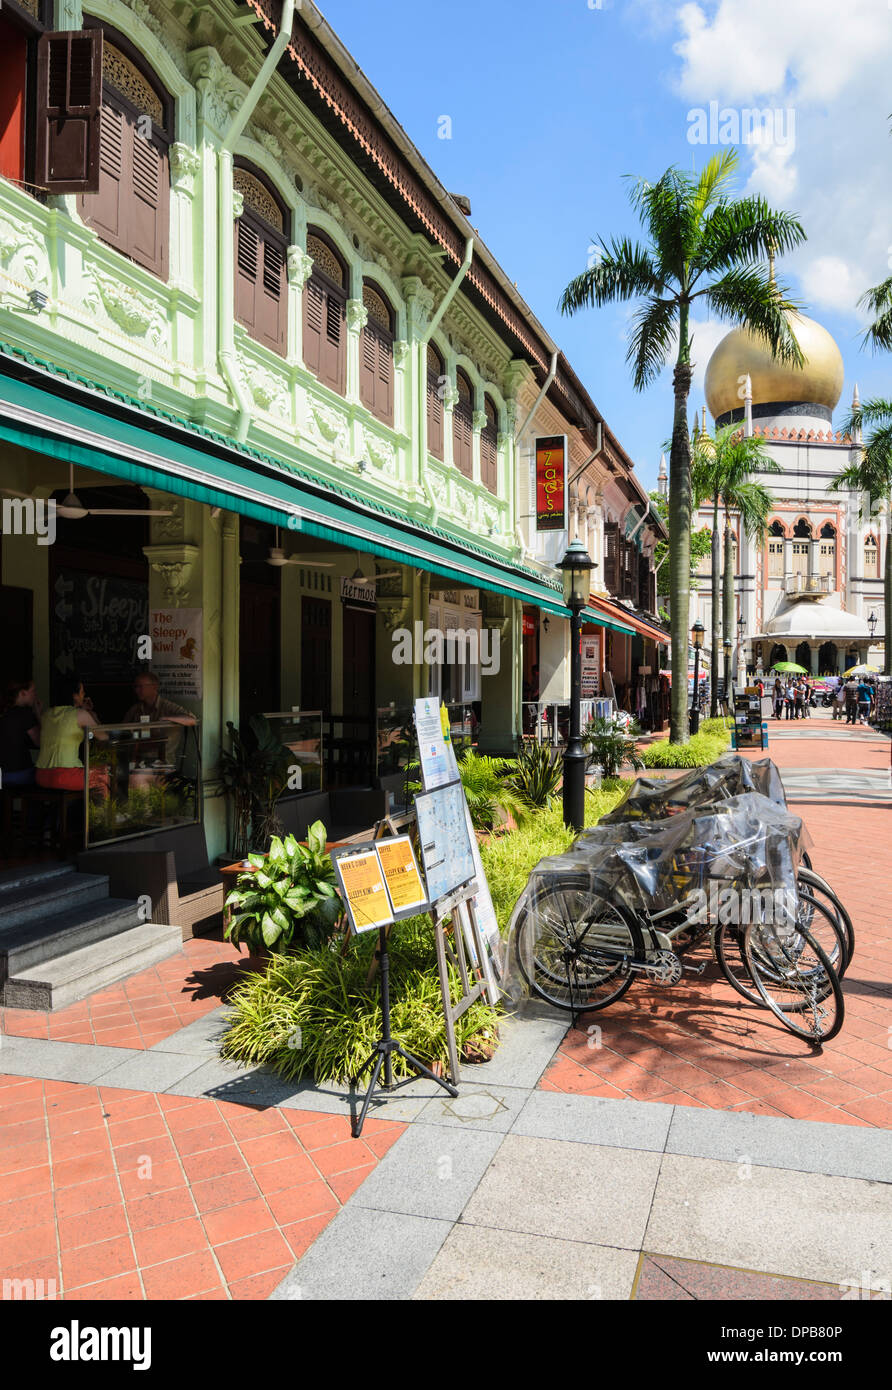 Pedestrian only part of Bussorah St and the Masjid Sultan in Kampong Glam, Singapore - Stock Image